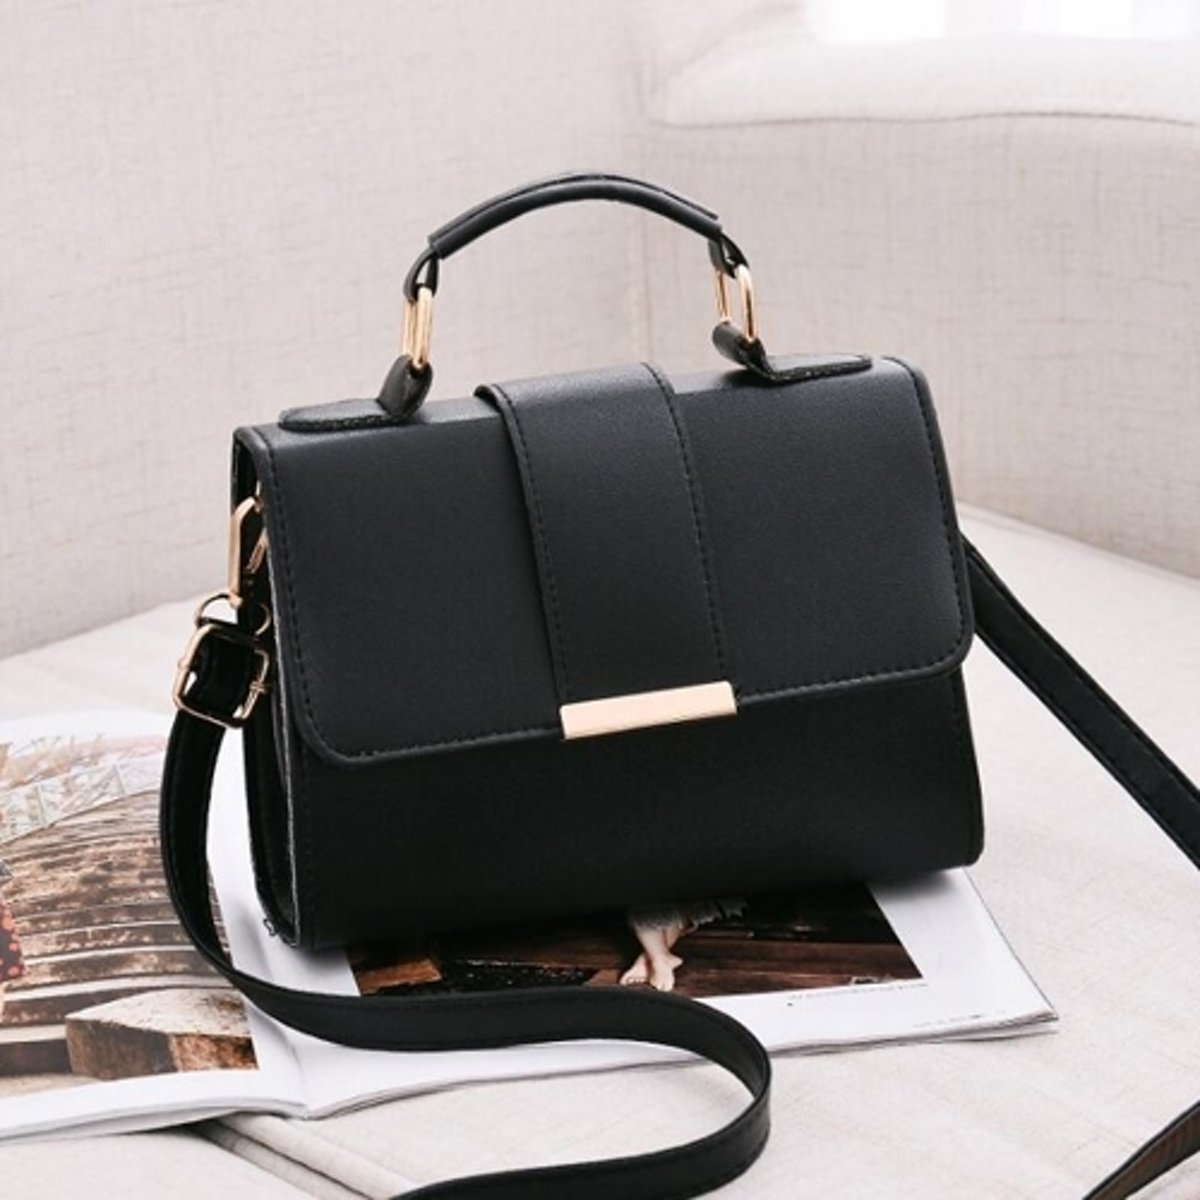 Let op type!! Women Bag Leather Handbags PU Shoulder Bag Small Flap Crossbody Bags for Women Messenger Bags(Black)